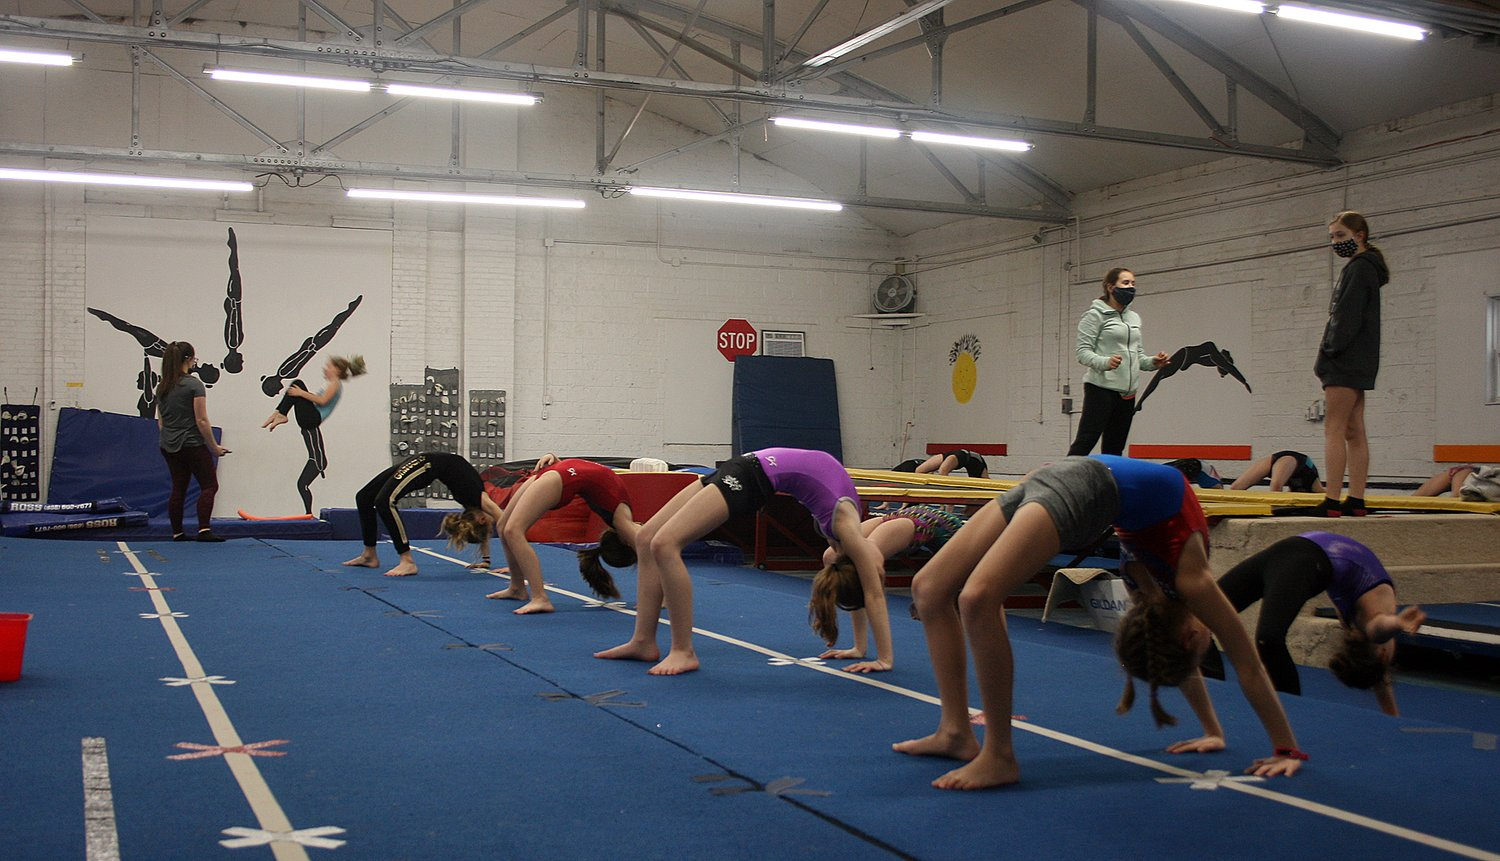 Hilltop Elite Academy of Tumbling and Trampoline, Inc., has been able to reintroduce their athletes back into the gym with COVID-19 safety precautions in place. Above, junior coaches Summer Spencer (masked, left) and Amya Greenwood (masked, right) lead stretching in the mid-level (advanced beginner to novice levels) class while Hannah Huber coaches an athlete on the trampoline in the background.